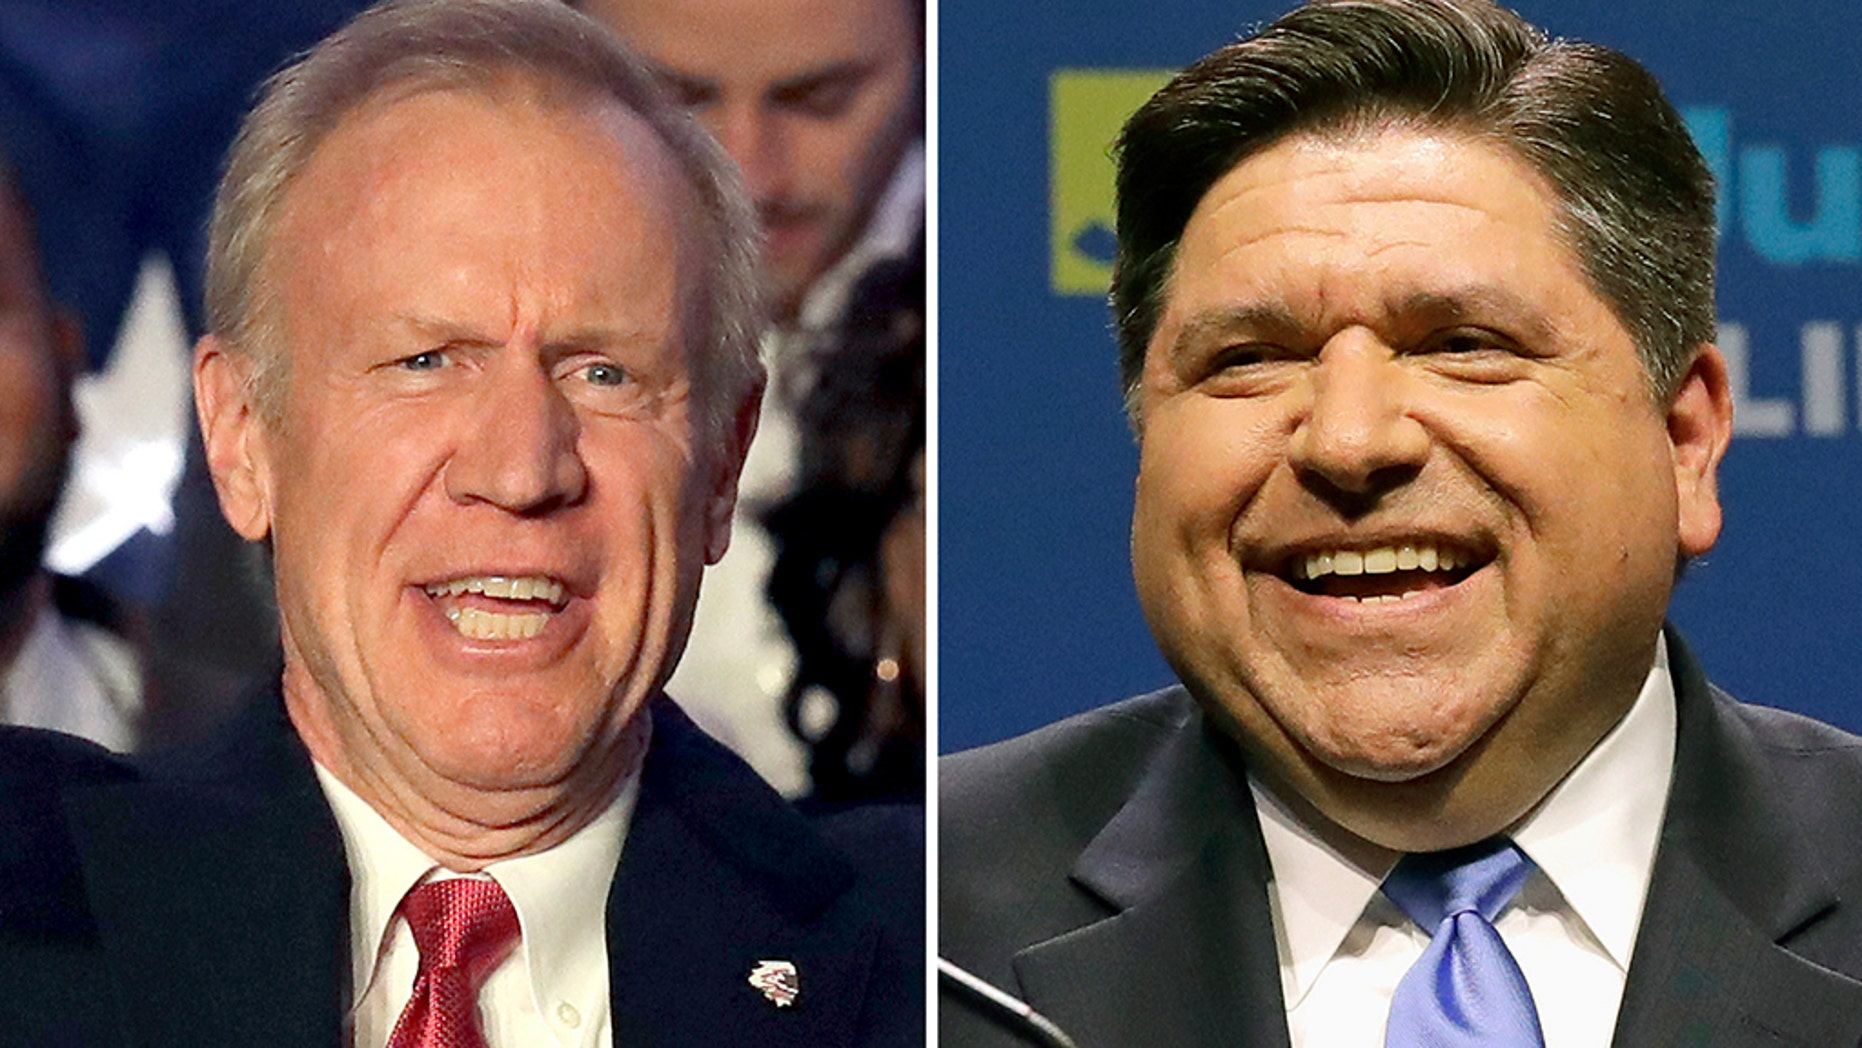 FILE - This combination of March 20, 2018, file photos shows the candidates for Illinois governor in the November 2018 election from left, incumbent GOP Gov. Bruce Rauner and Democrat J.B. Pritzker. (AP Photo/File)